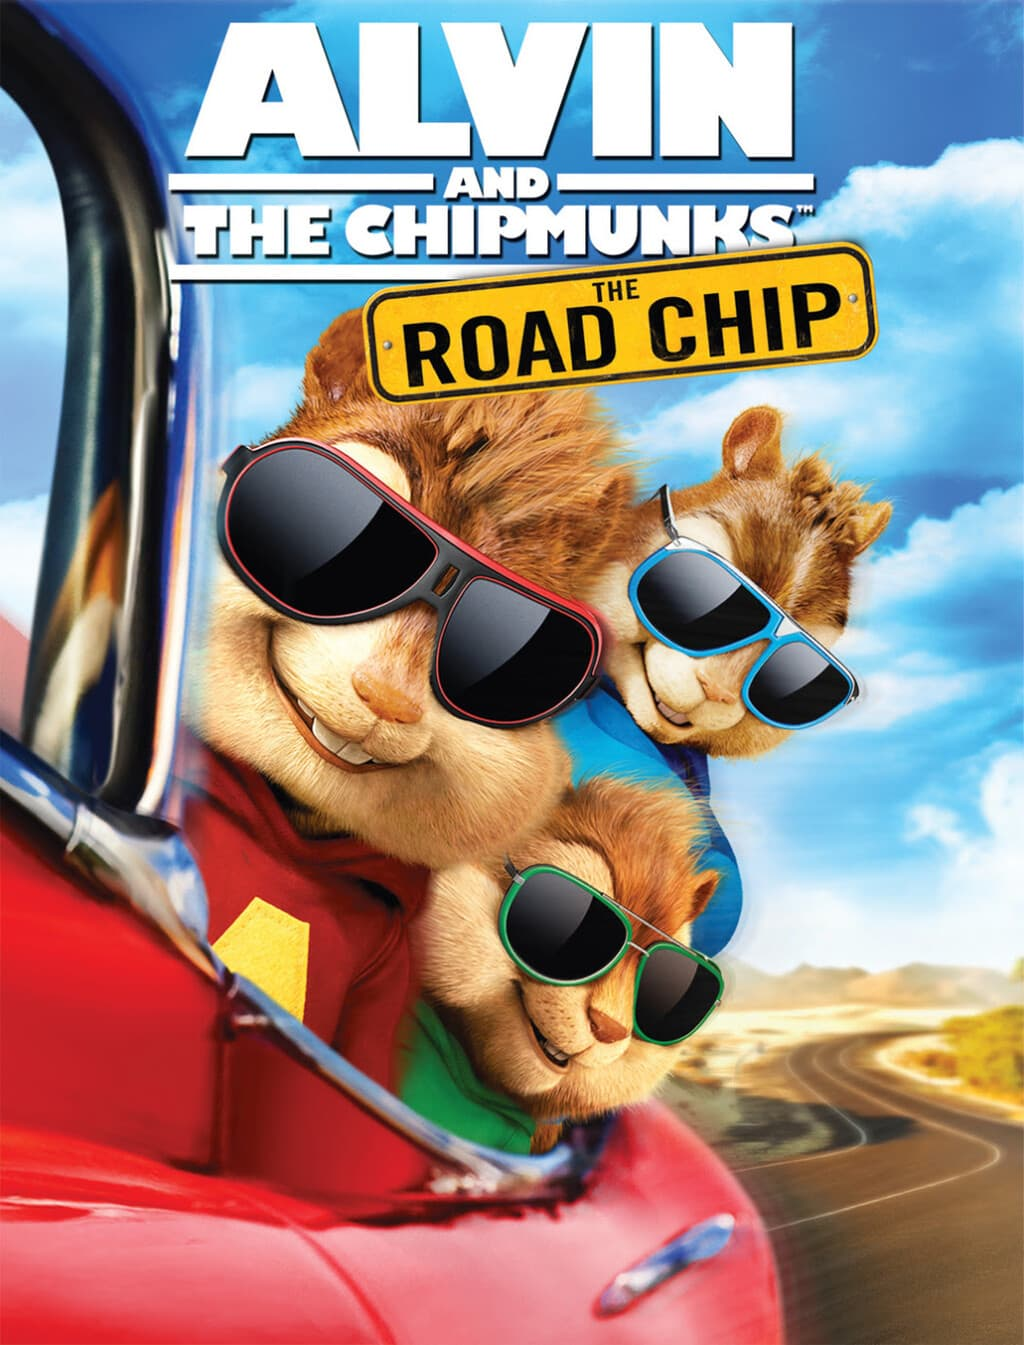 Enter to Win ALVIN & THE CHIPMUNKS: THE ROAD CHIP